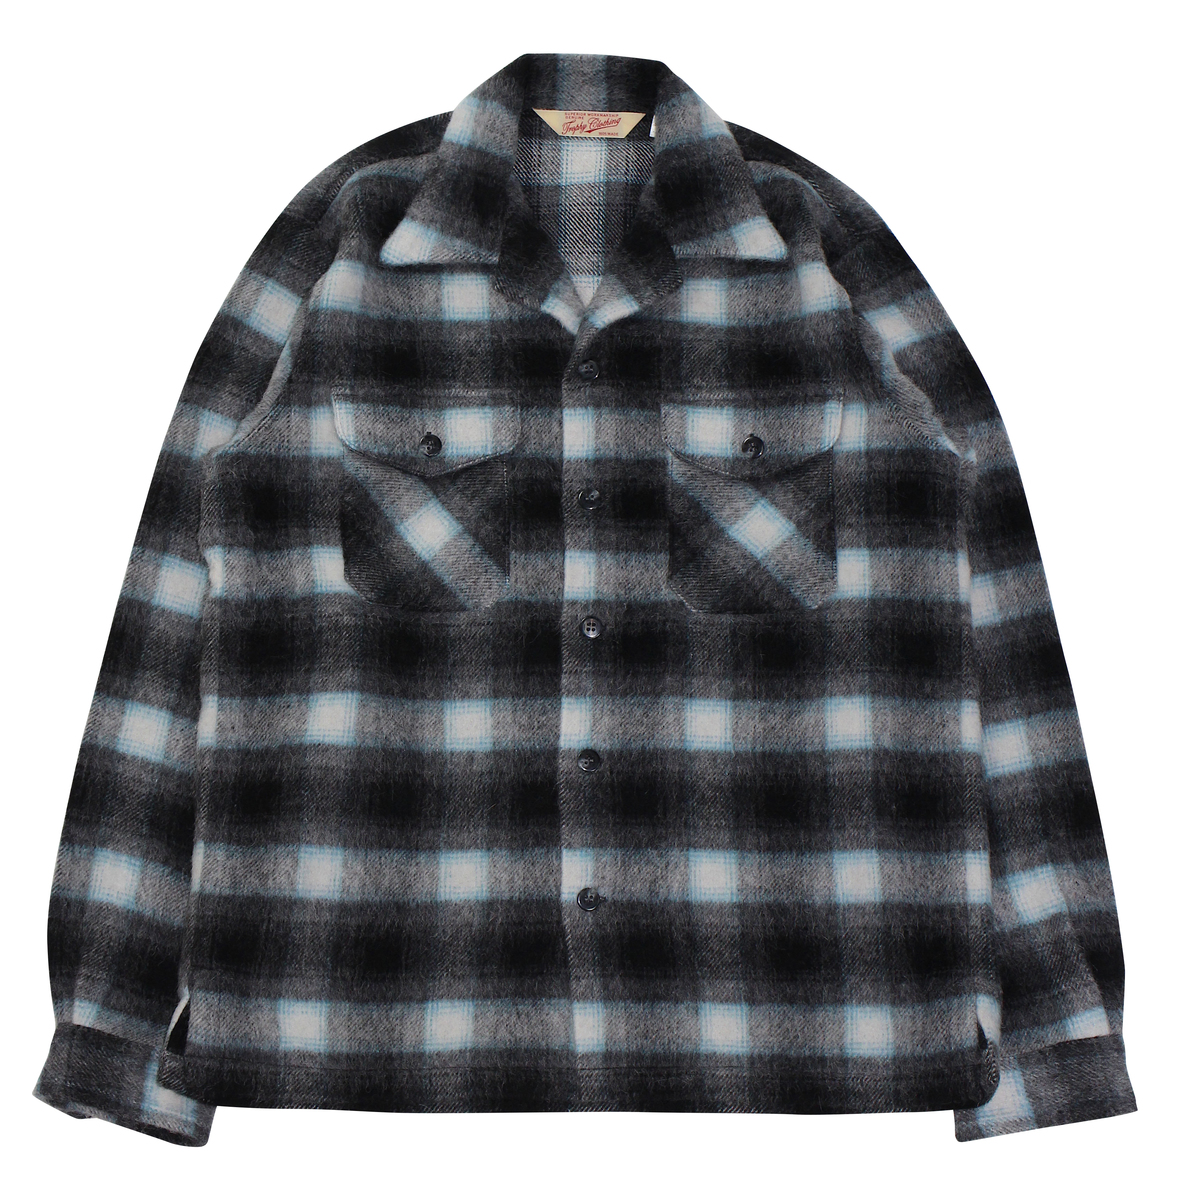 TROPHY CLOTHING [-Frisco Shaggy Wool L/S Shirt- Black size.14,15,16,17]